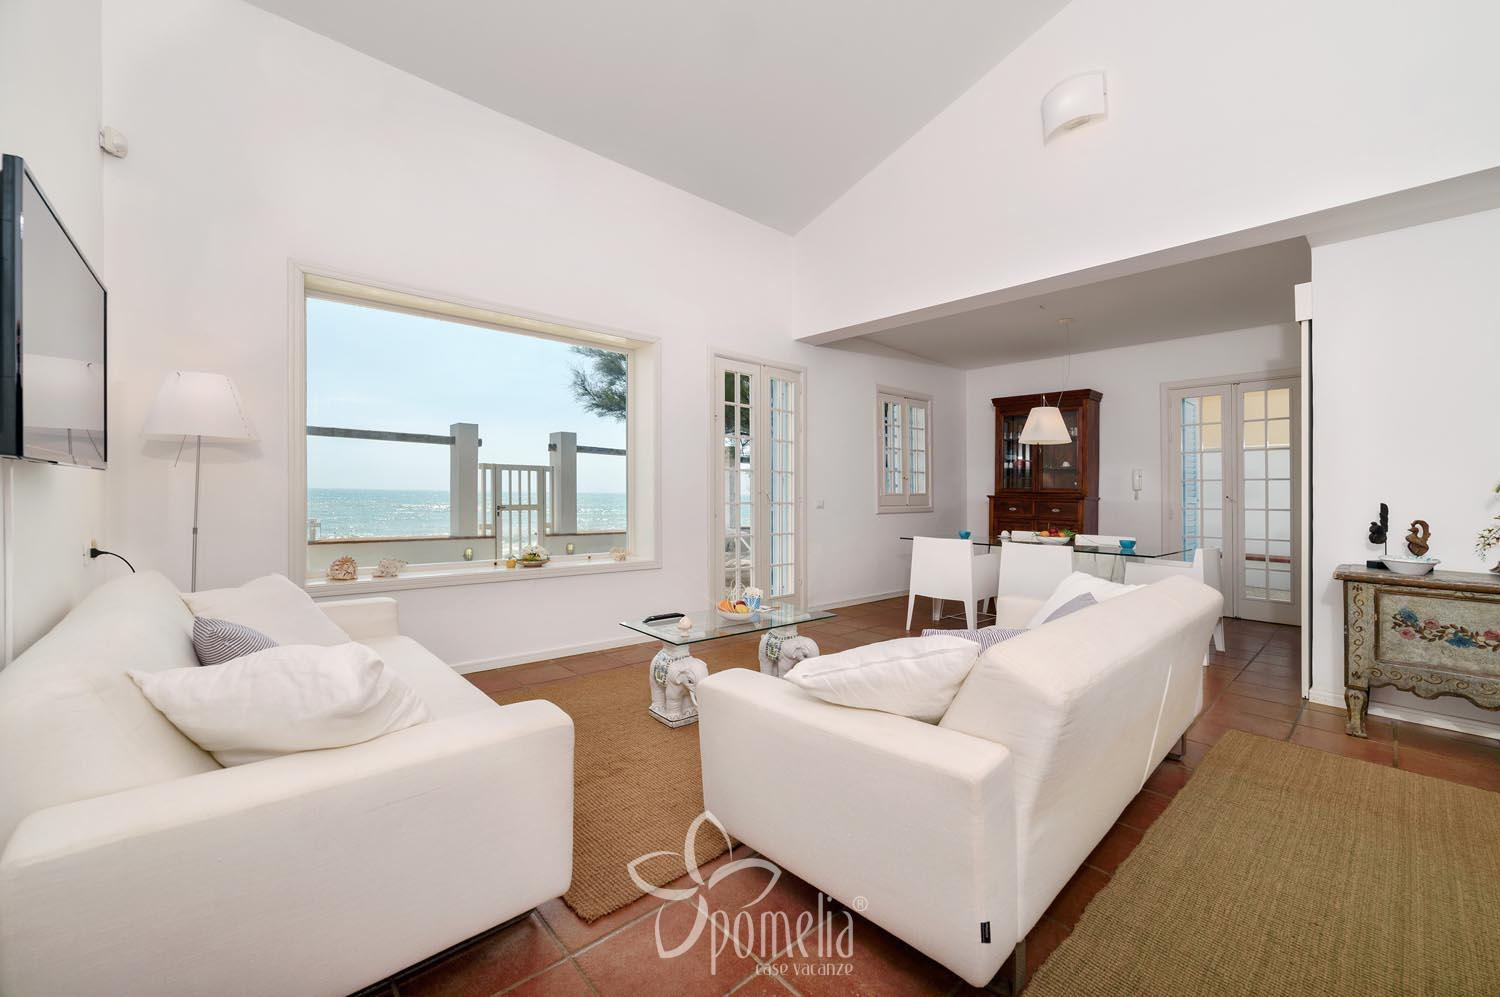 Elettra, seafront villa with beautiful view near Punta Secca - Living room